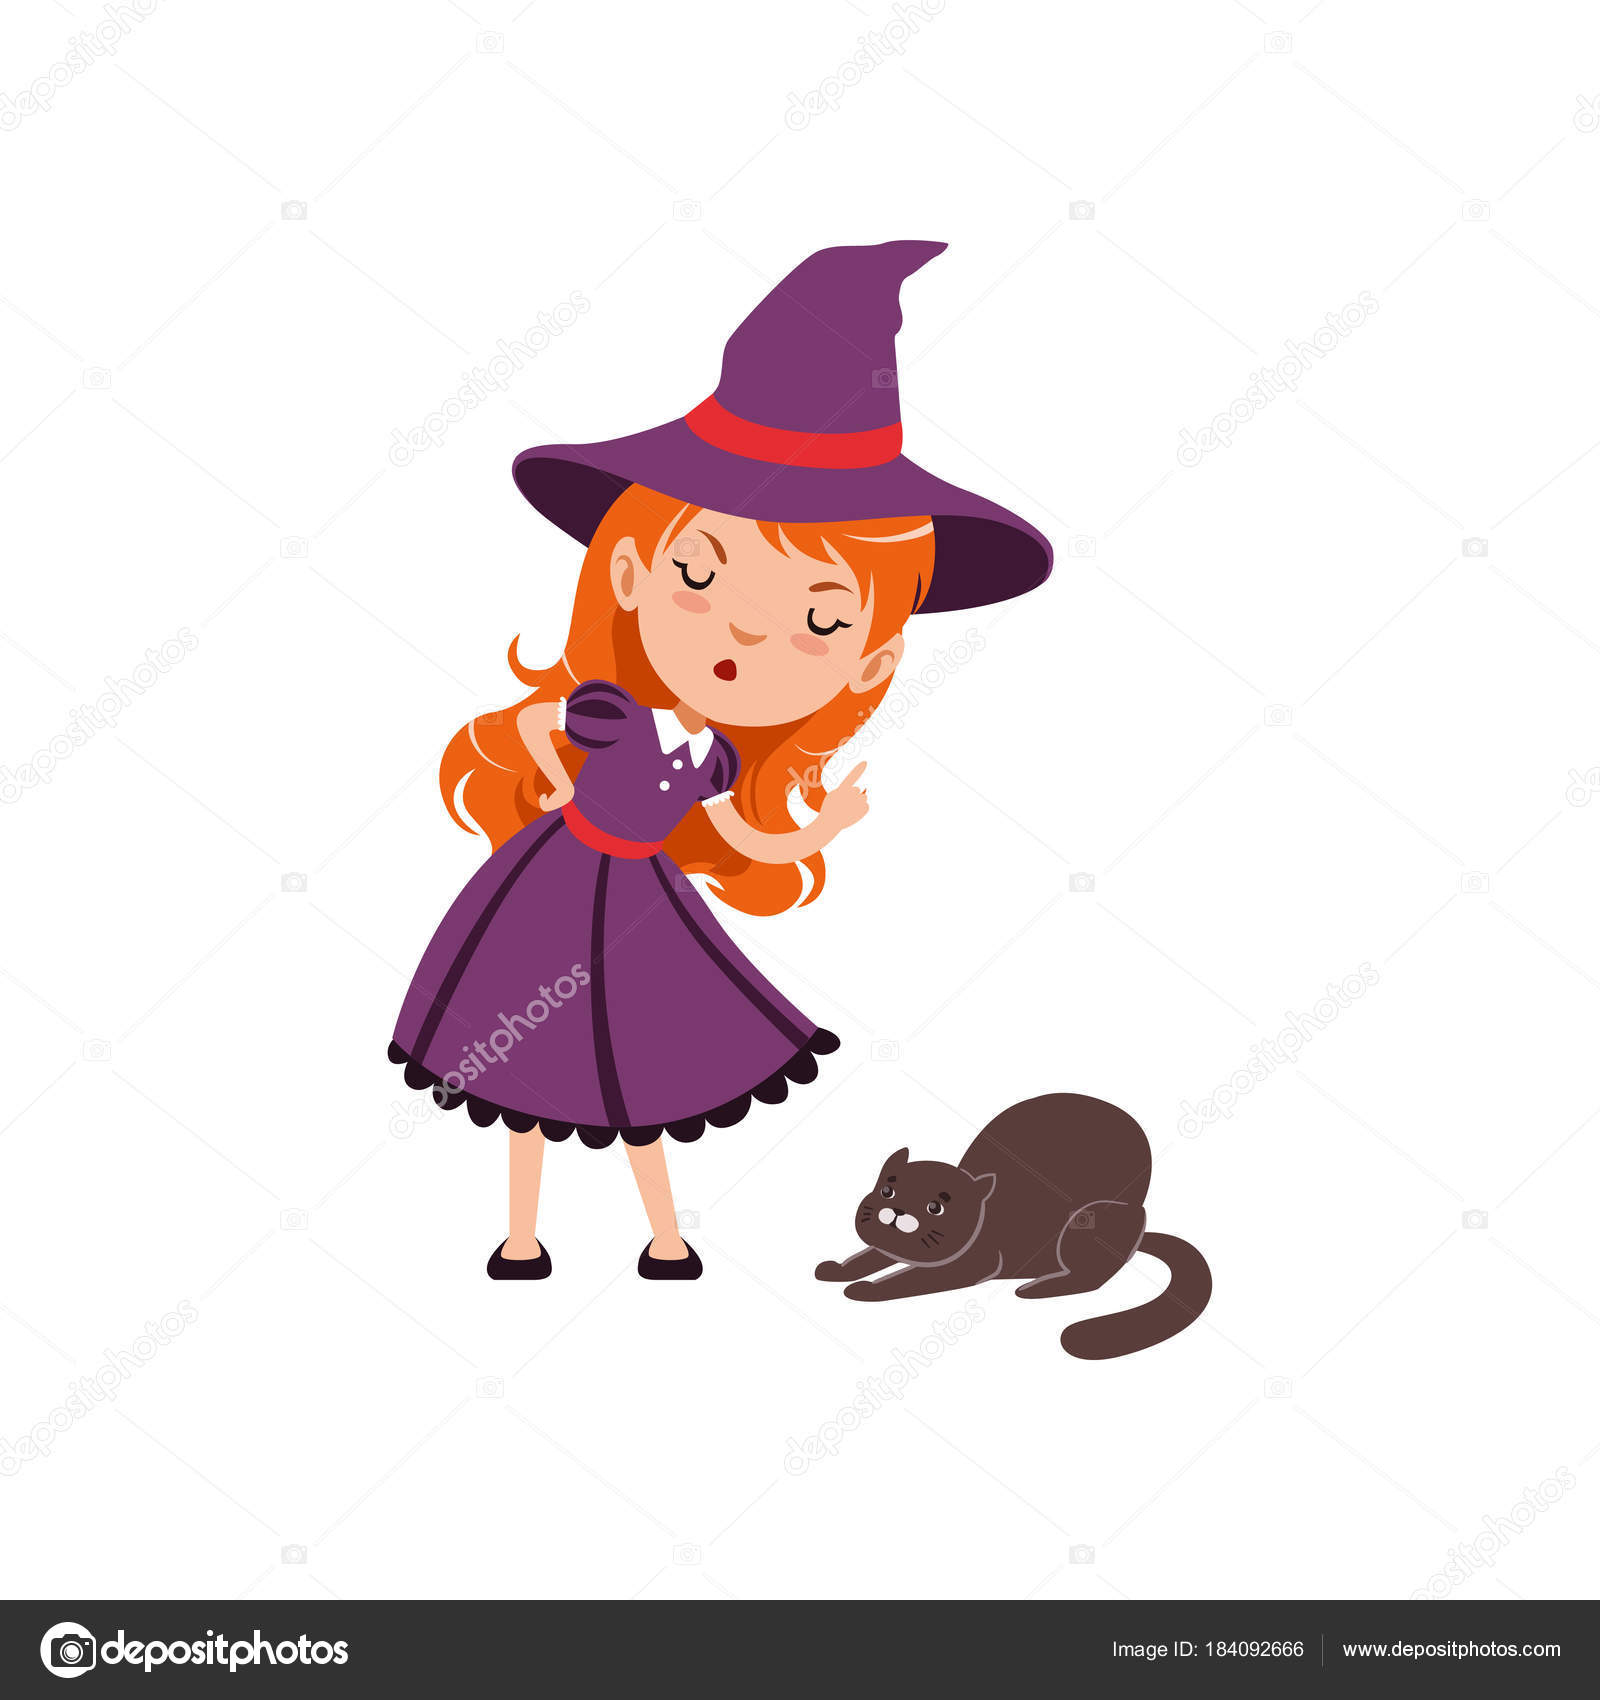 Fashion style Cartoon what cat wears a purple hat for woman